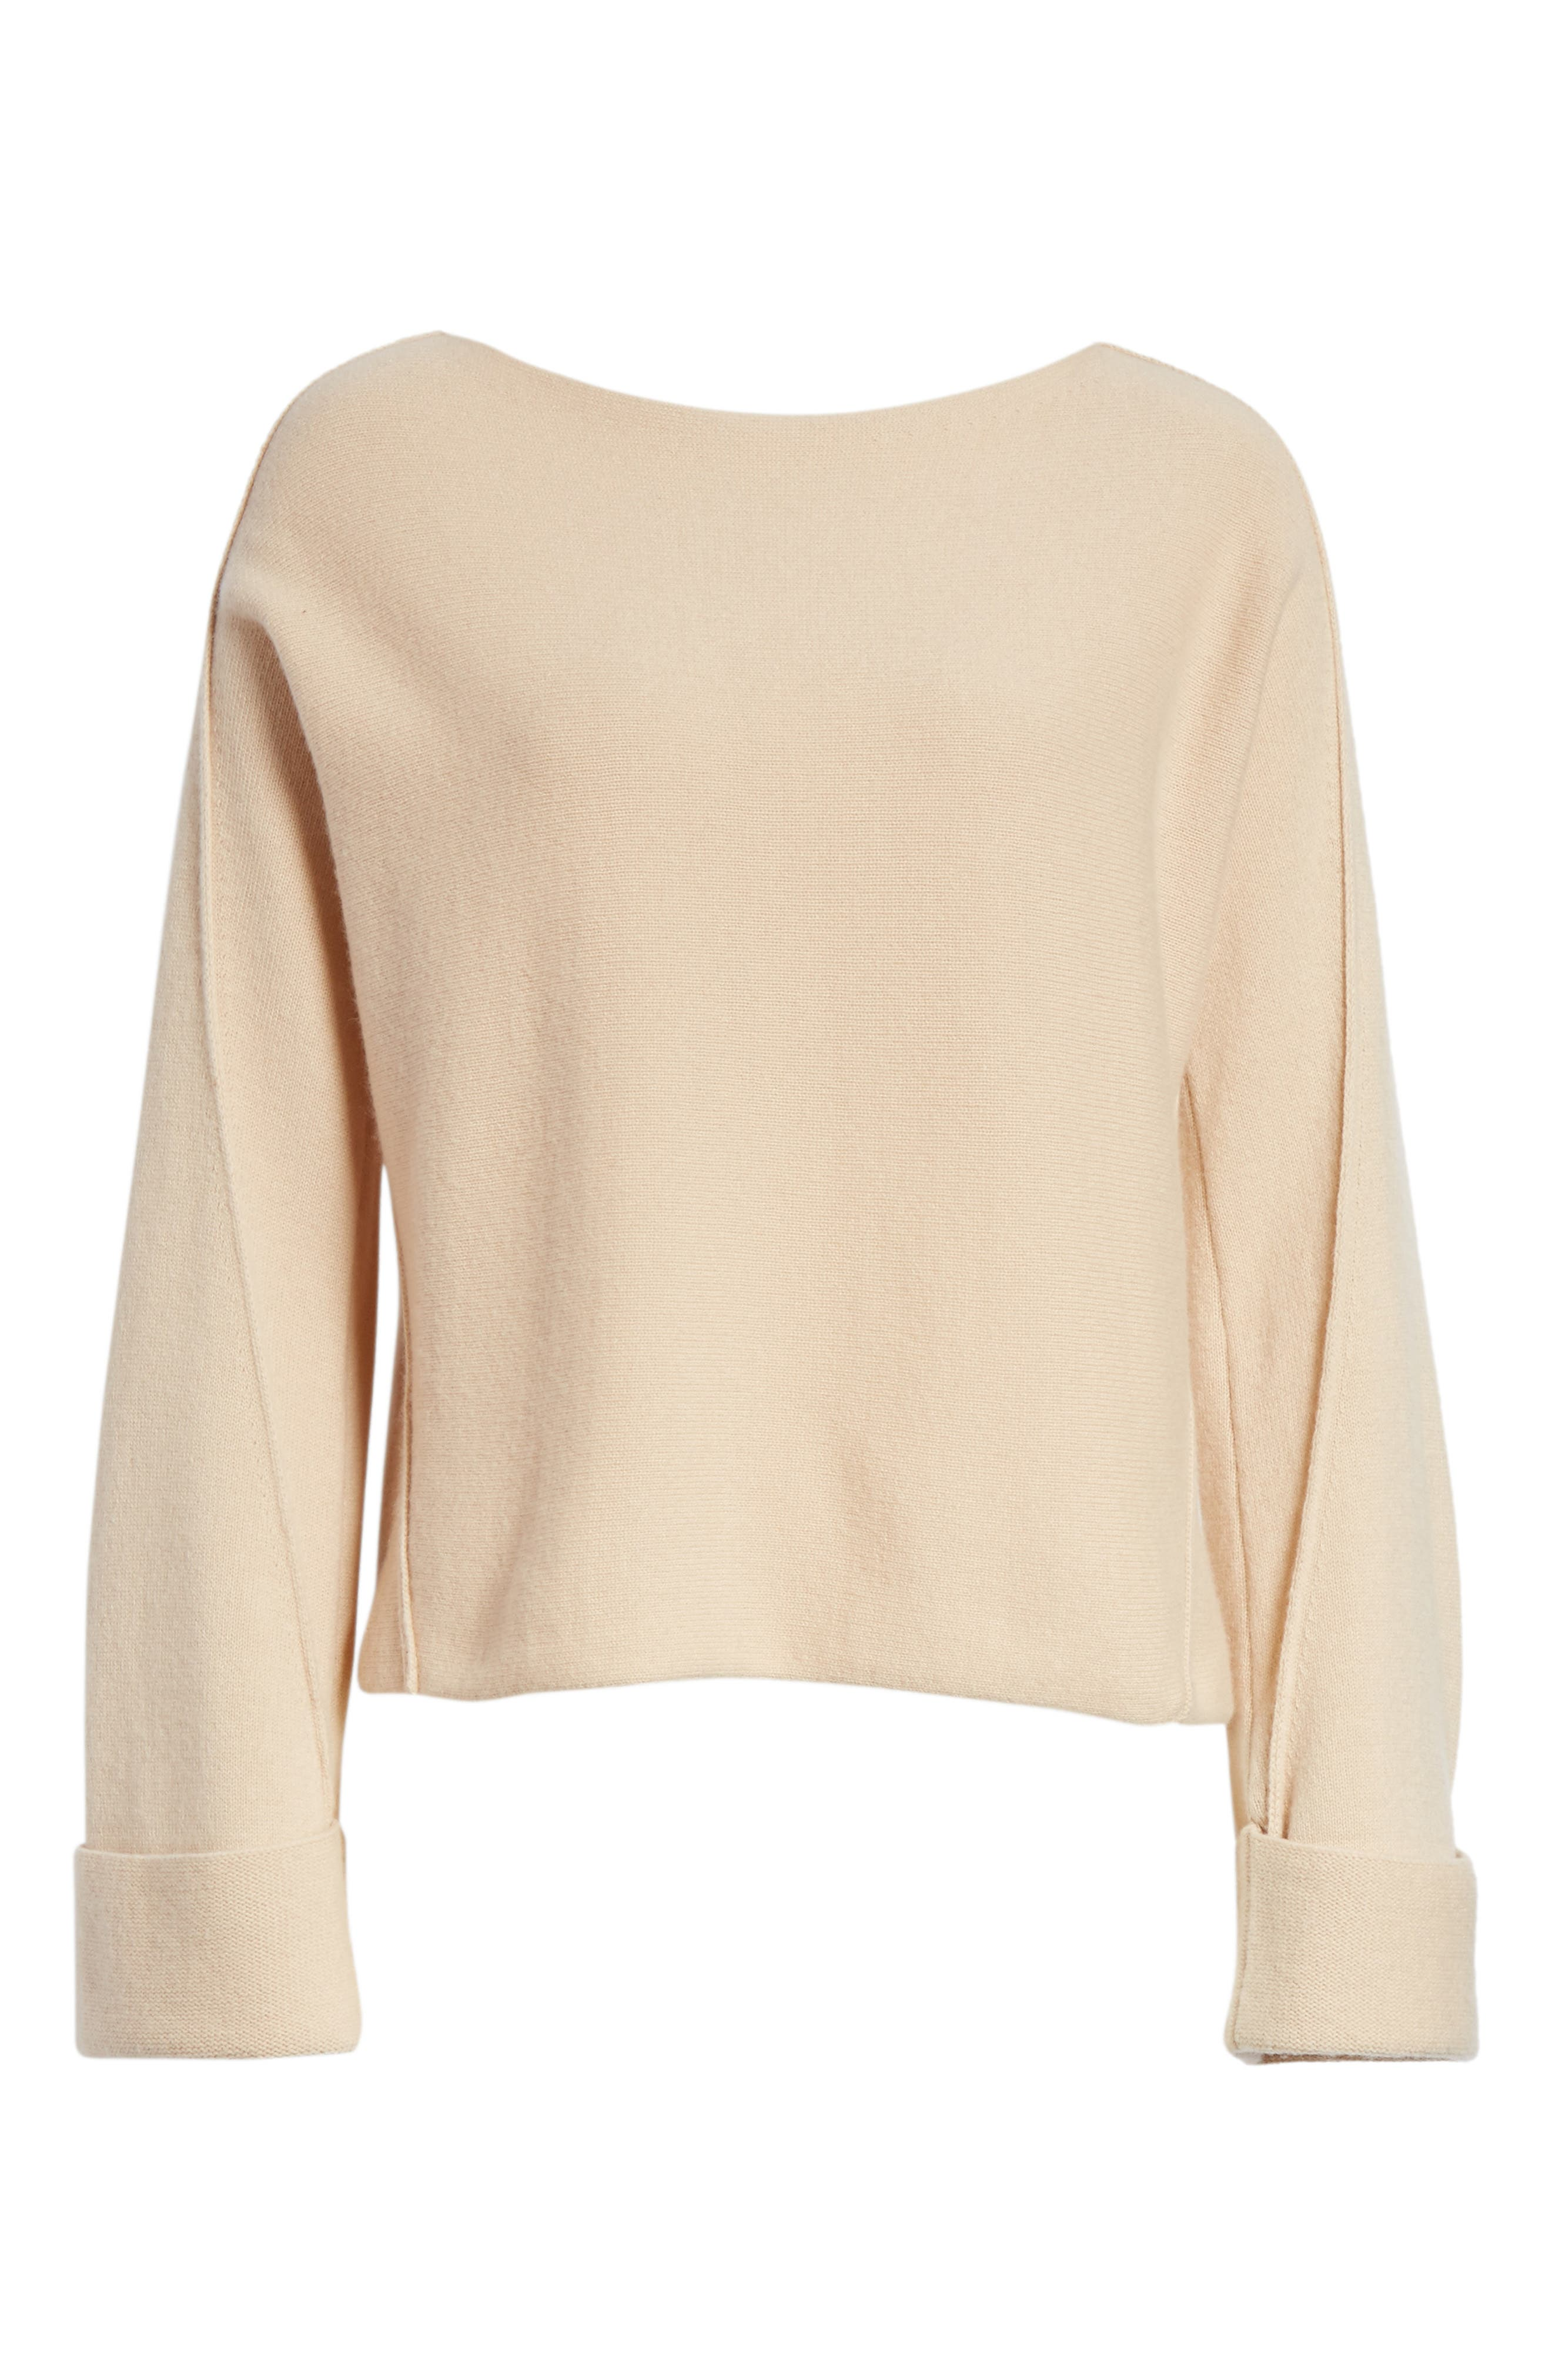 VINCE,                             Cuffed Sleeve Wool & Cashmere Sweater,                             Alternate thumbnail 6, color,                             298